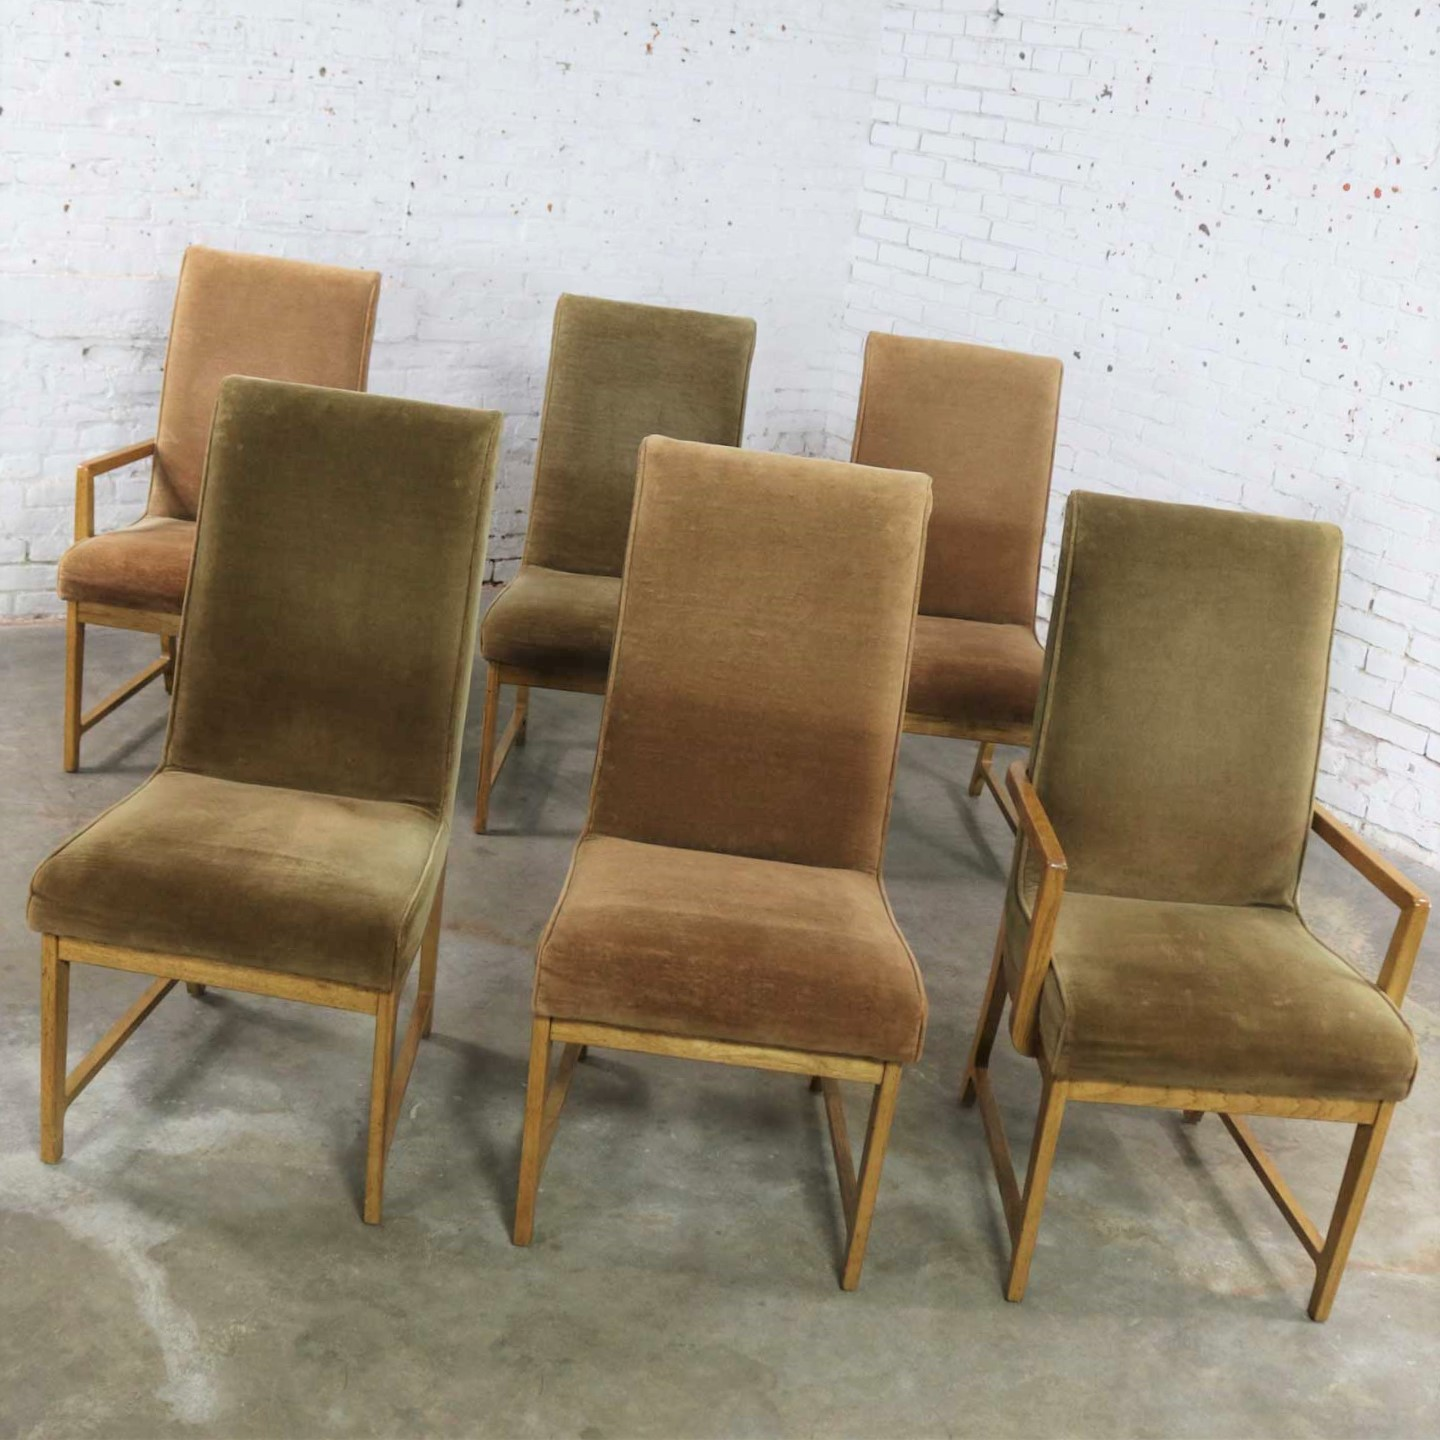 6 Modern Style Vintage Dining Chairs Velvet Scoop Seats Bernhardt Flair For Hibriten Warehouse 414